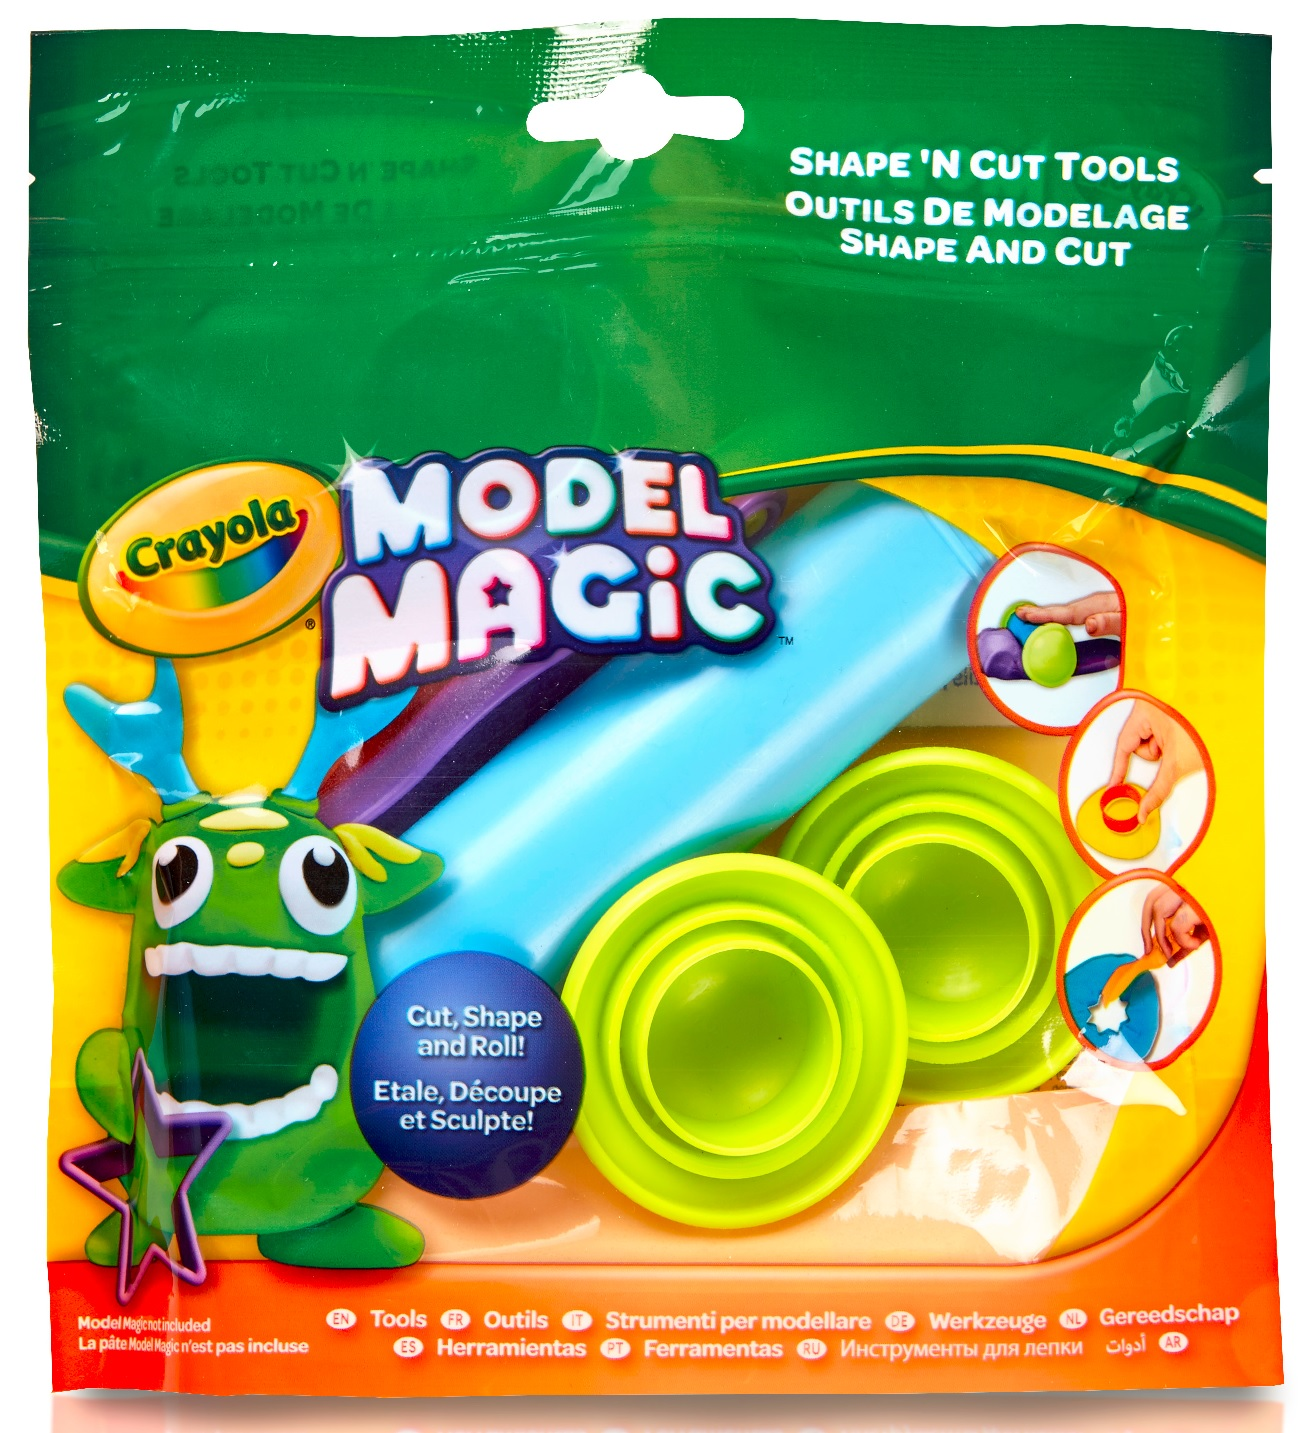 Crayola Model Magic Accessory Set, Clay Tools, Craft for Kids, Gift